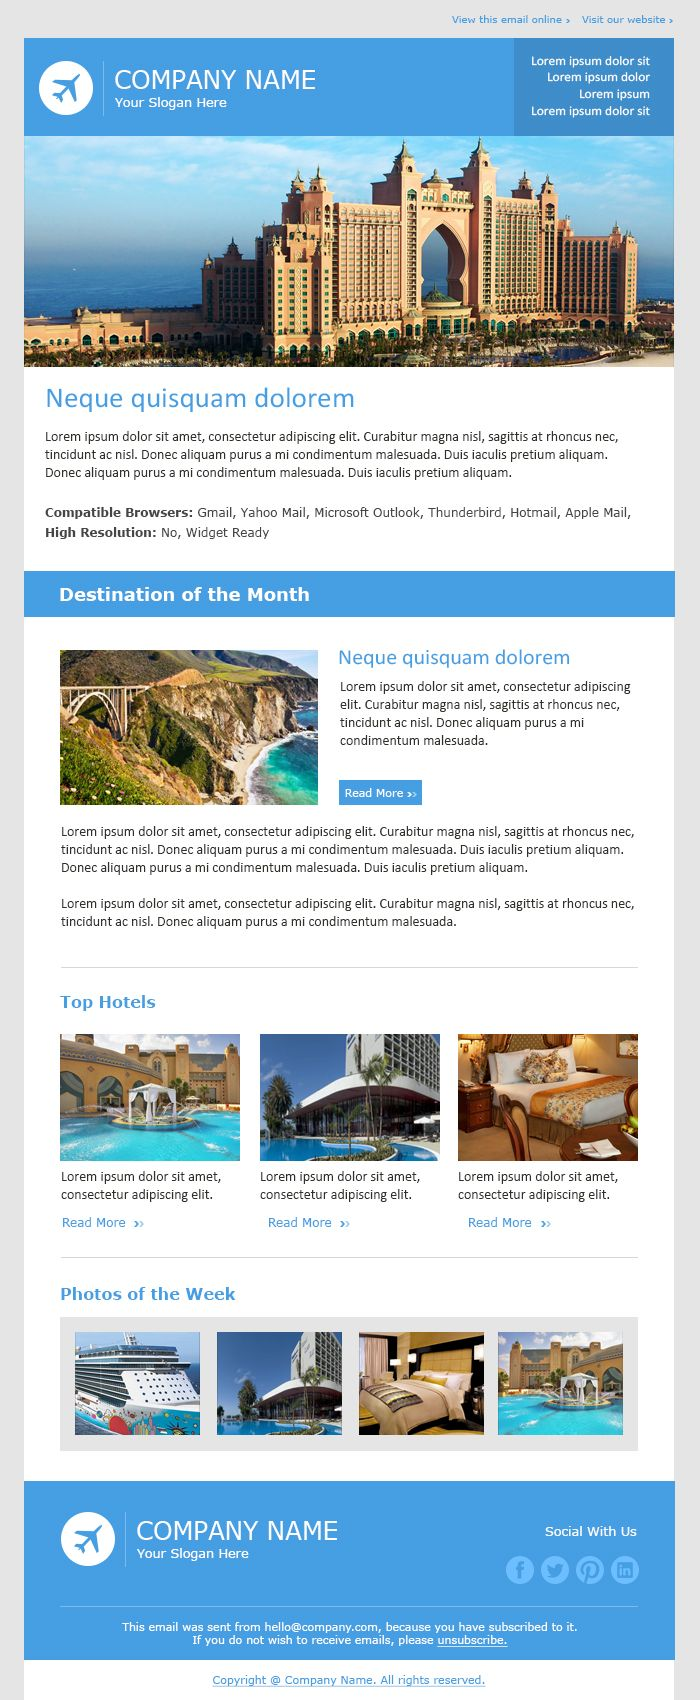 Email Newsletter Examples, Business Email Templates Sample